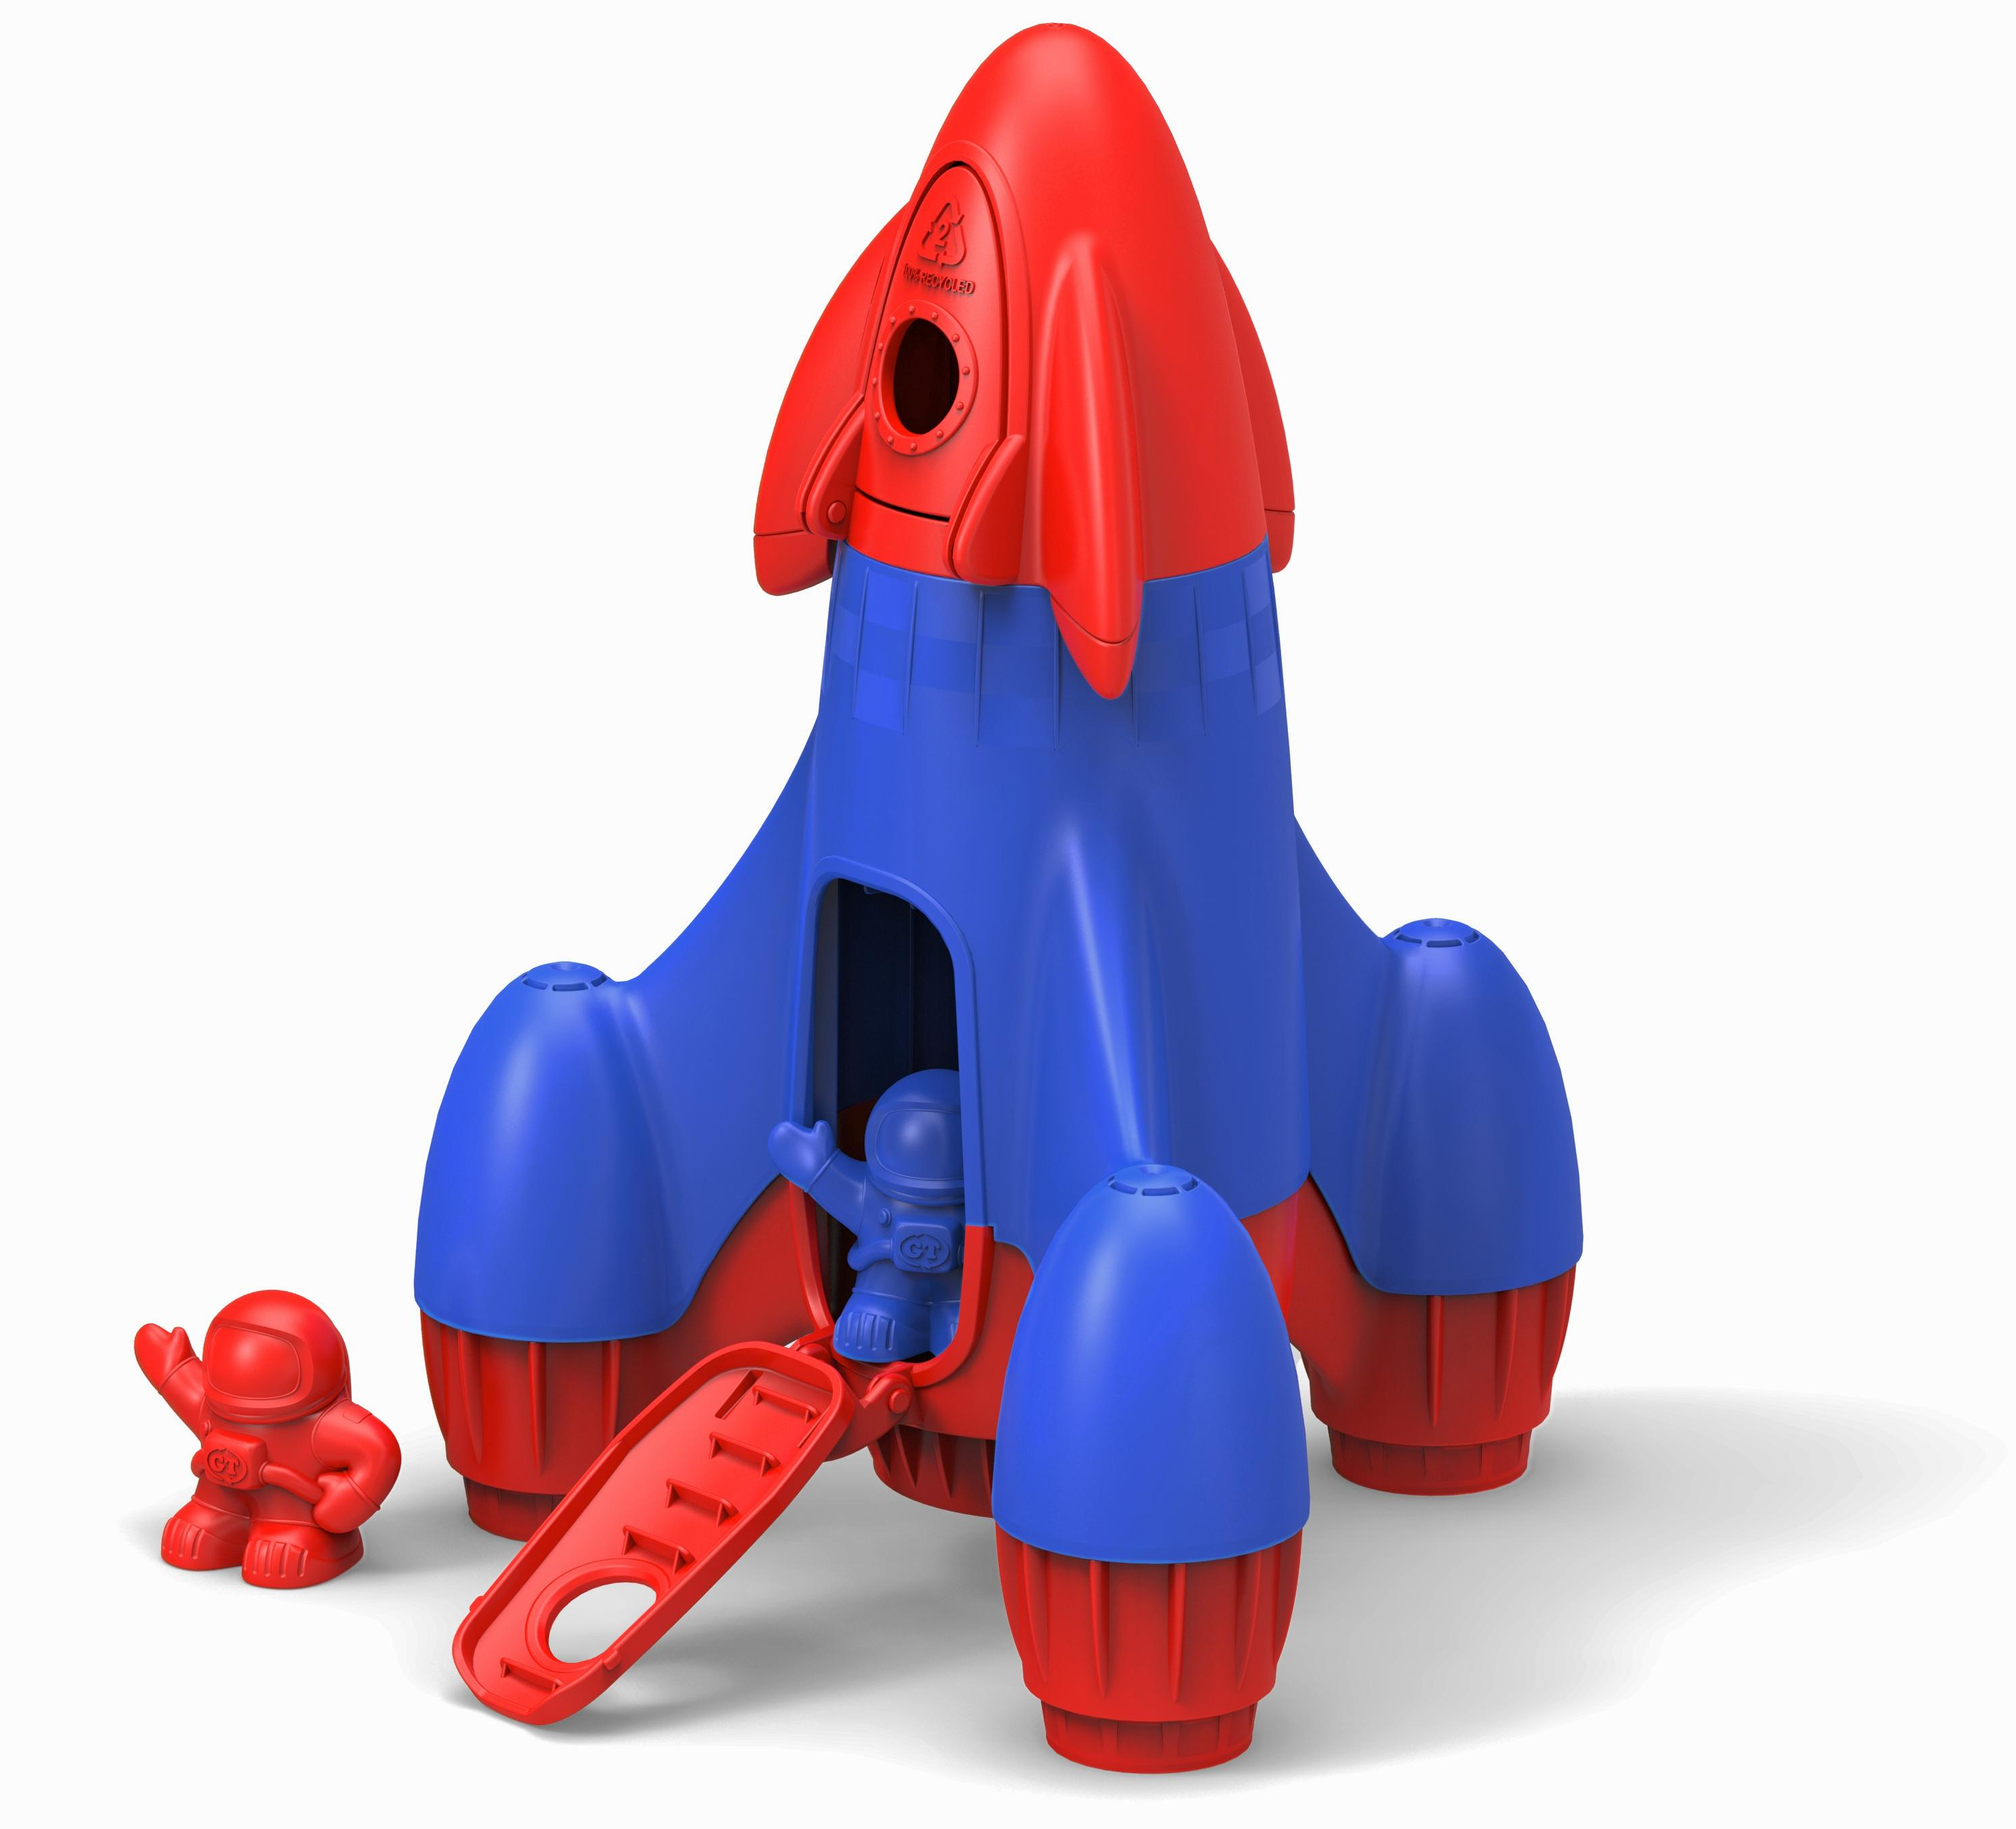 Green Toys Rocket - Red Top